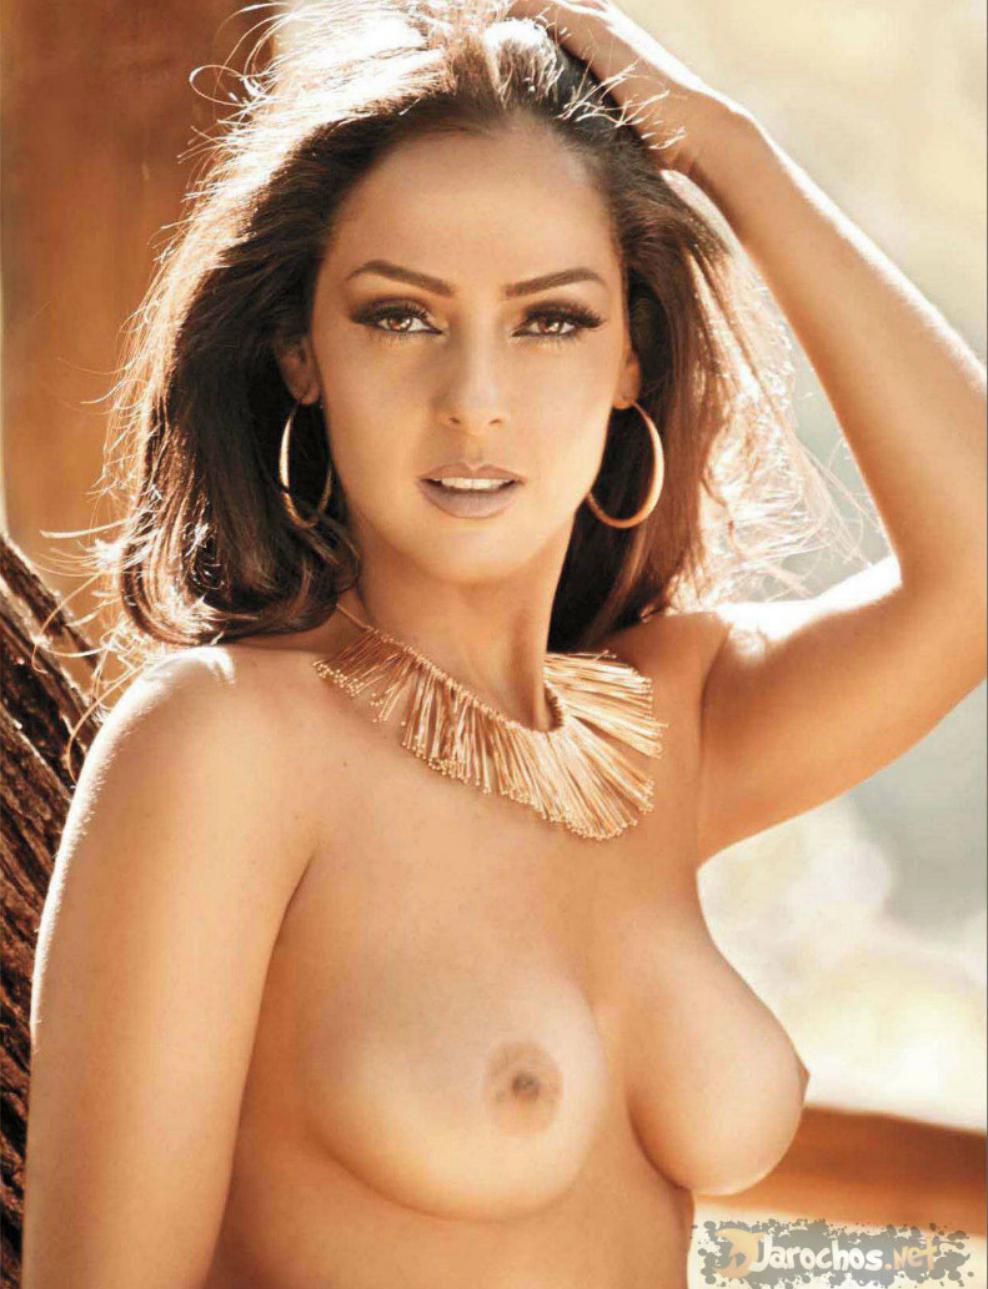 mexican-playboy-girls-nude-pics